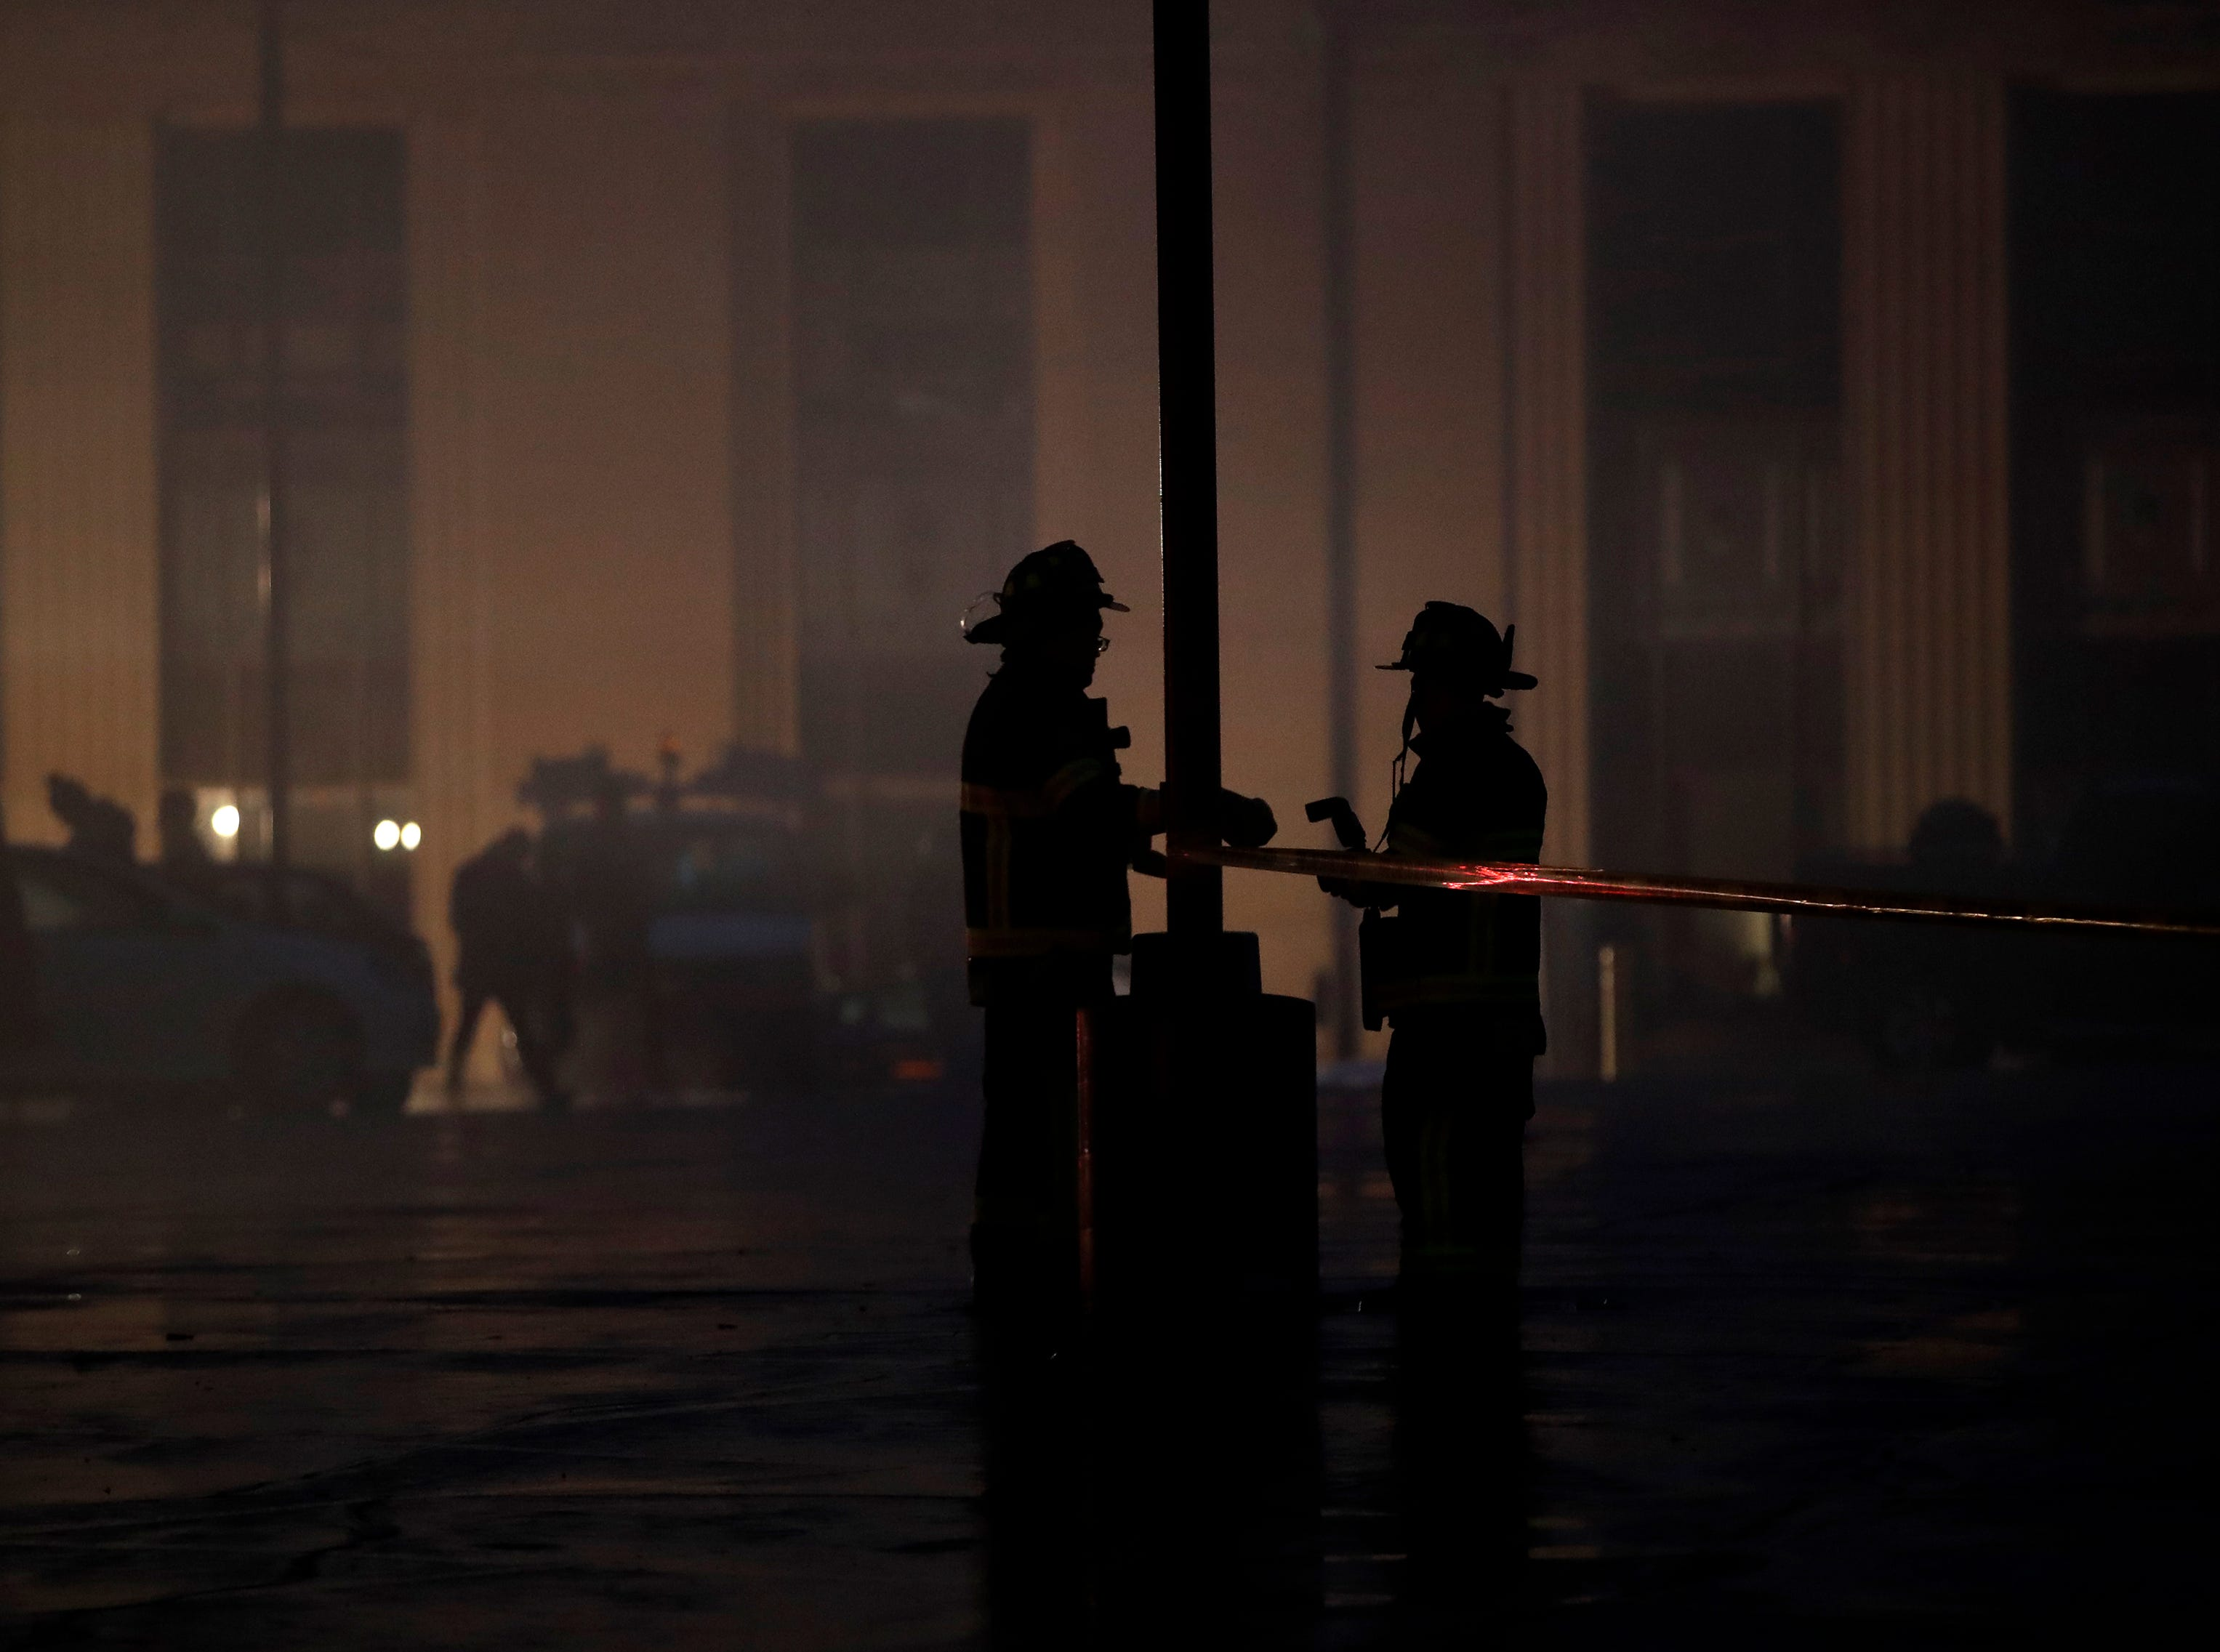 Firefighters put up caution tape at the scene of a structure fire in downtown Appleton on the corner of West Washington and North Appleton Streets Wednesday, March 13, 2019, in Appleton, Wis. Danny Damiani/USA TODAY NETWORK-Wisconsin